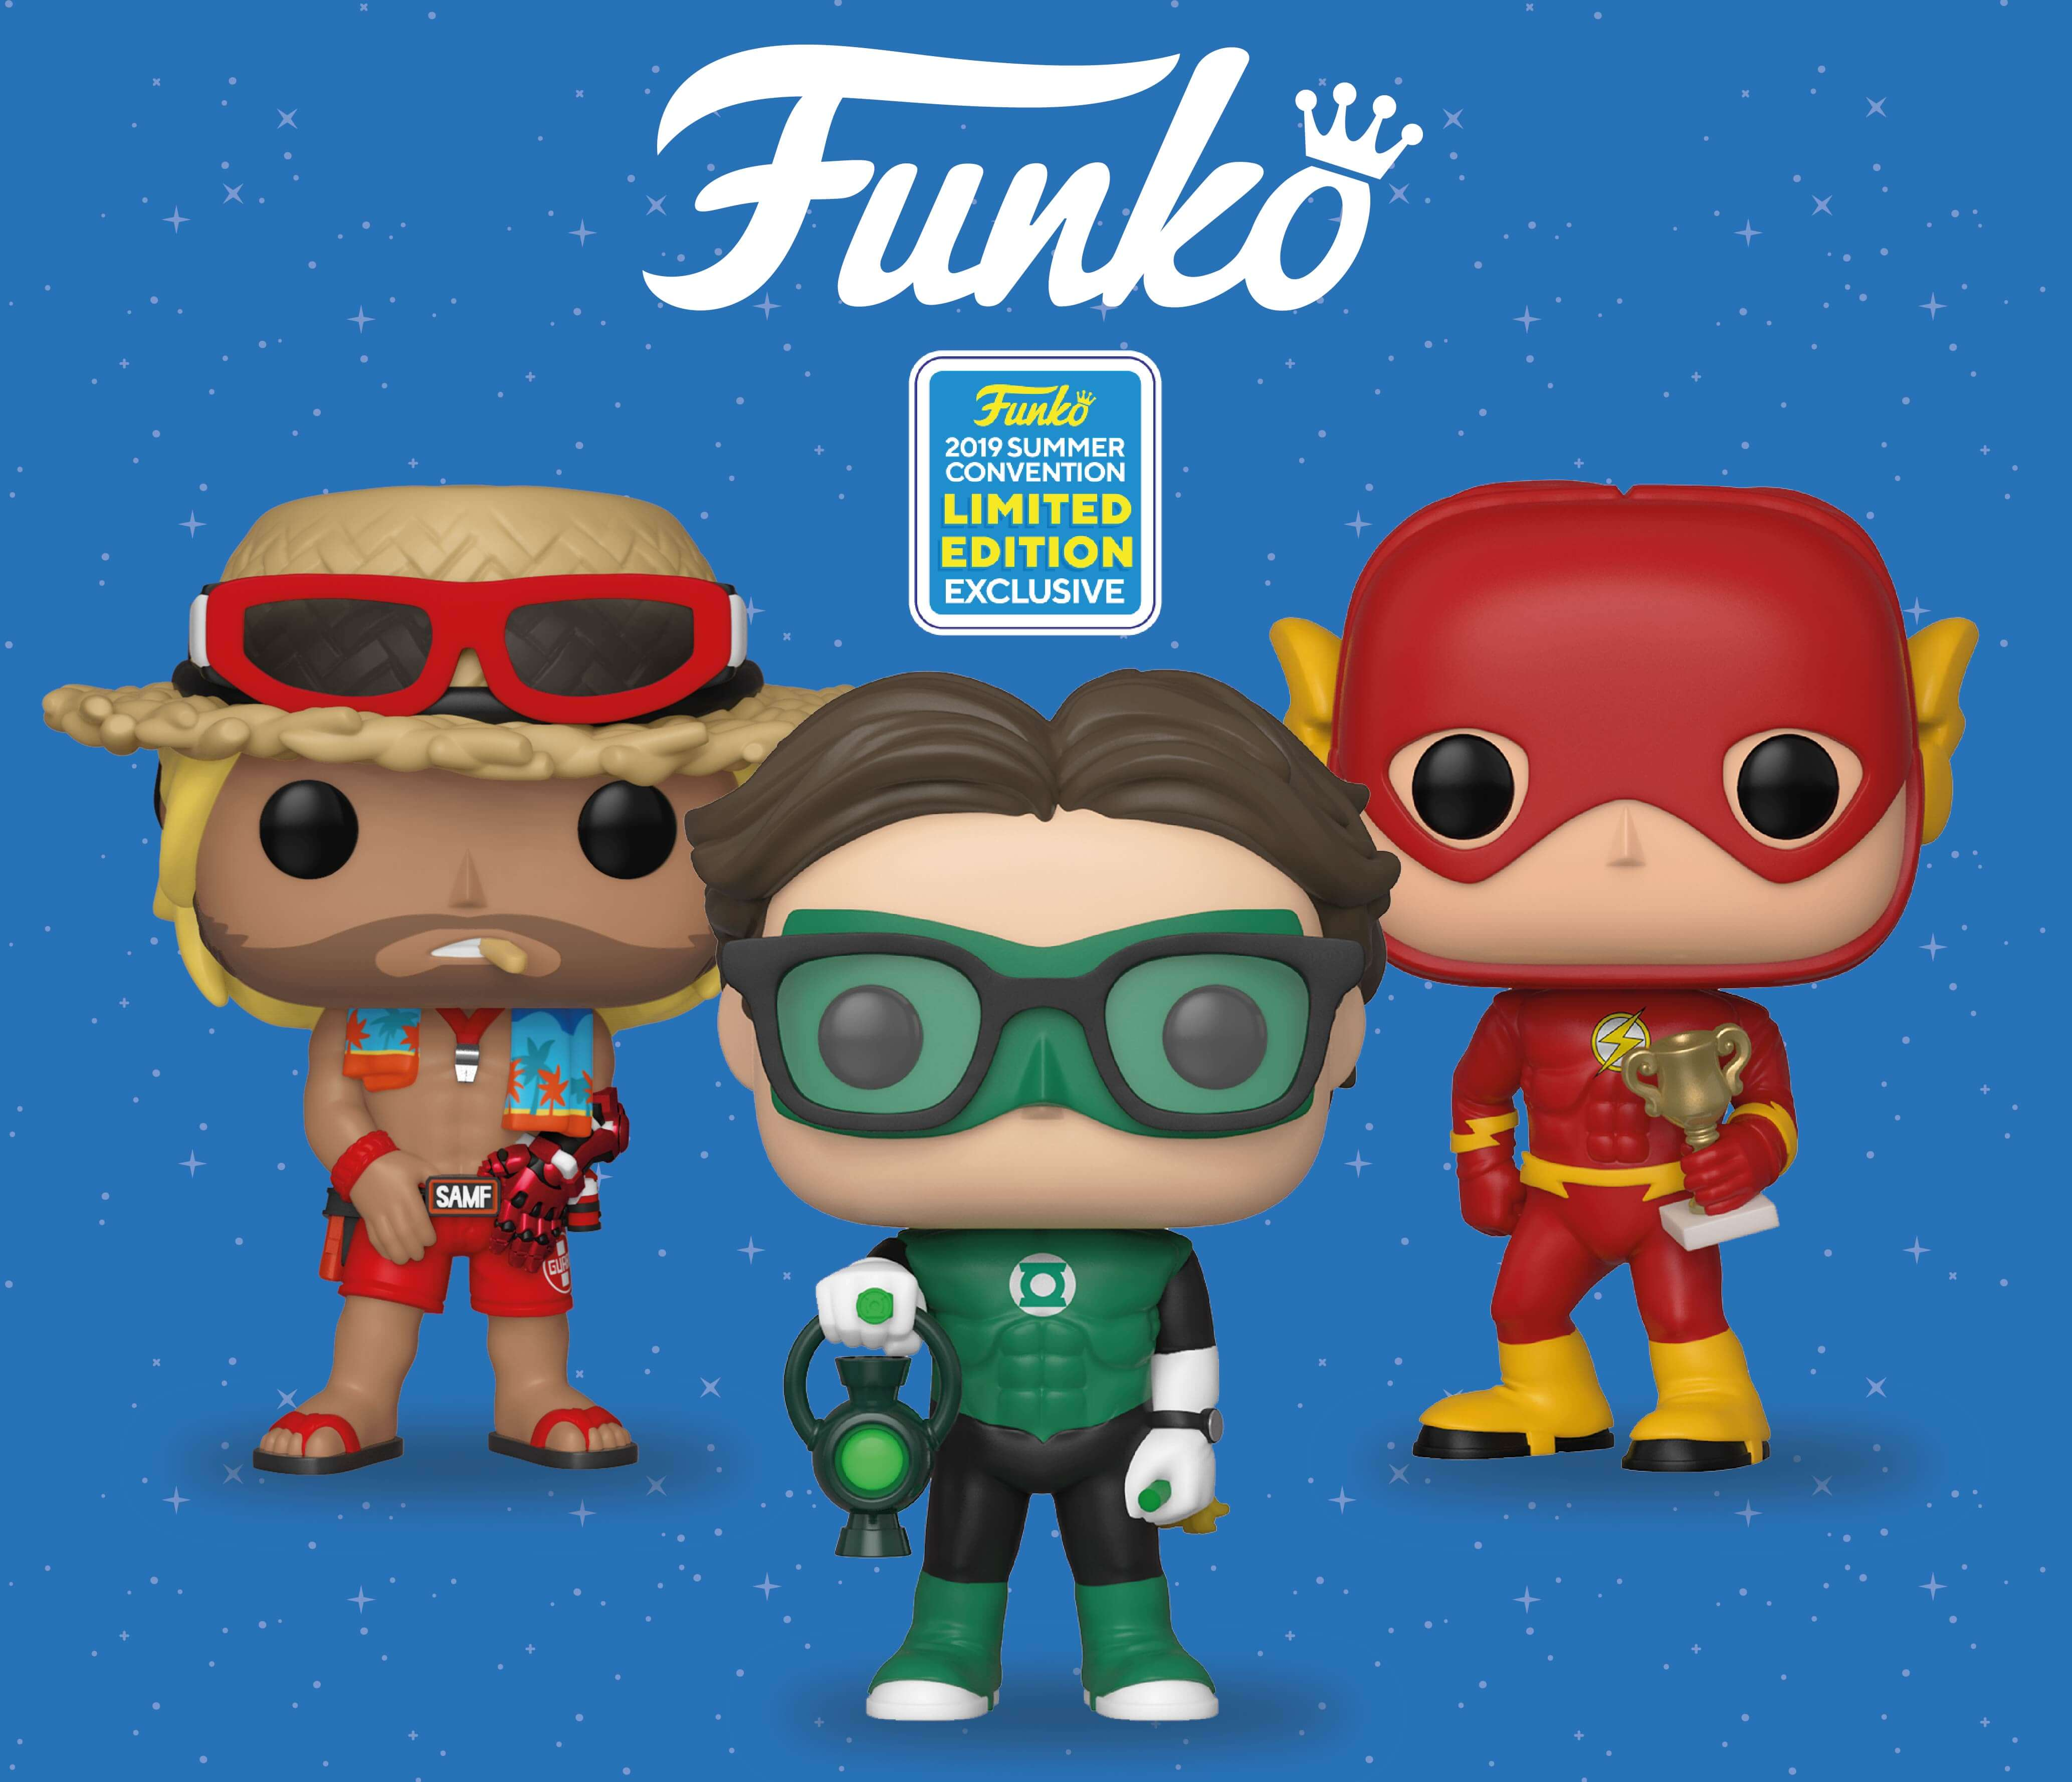 New Exclusive Funko Pop! - Now available for Pre-Order!